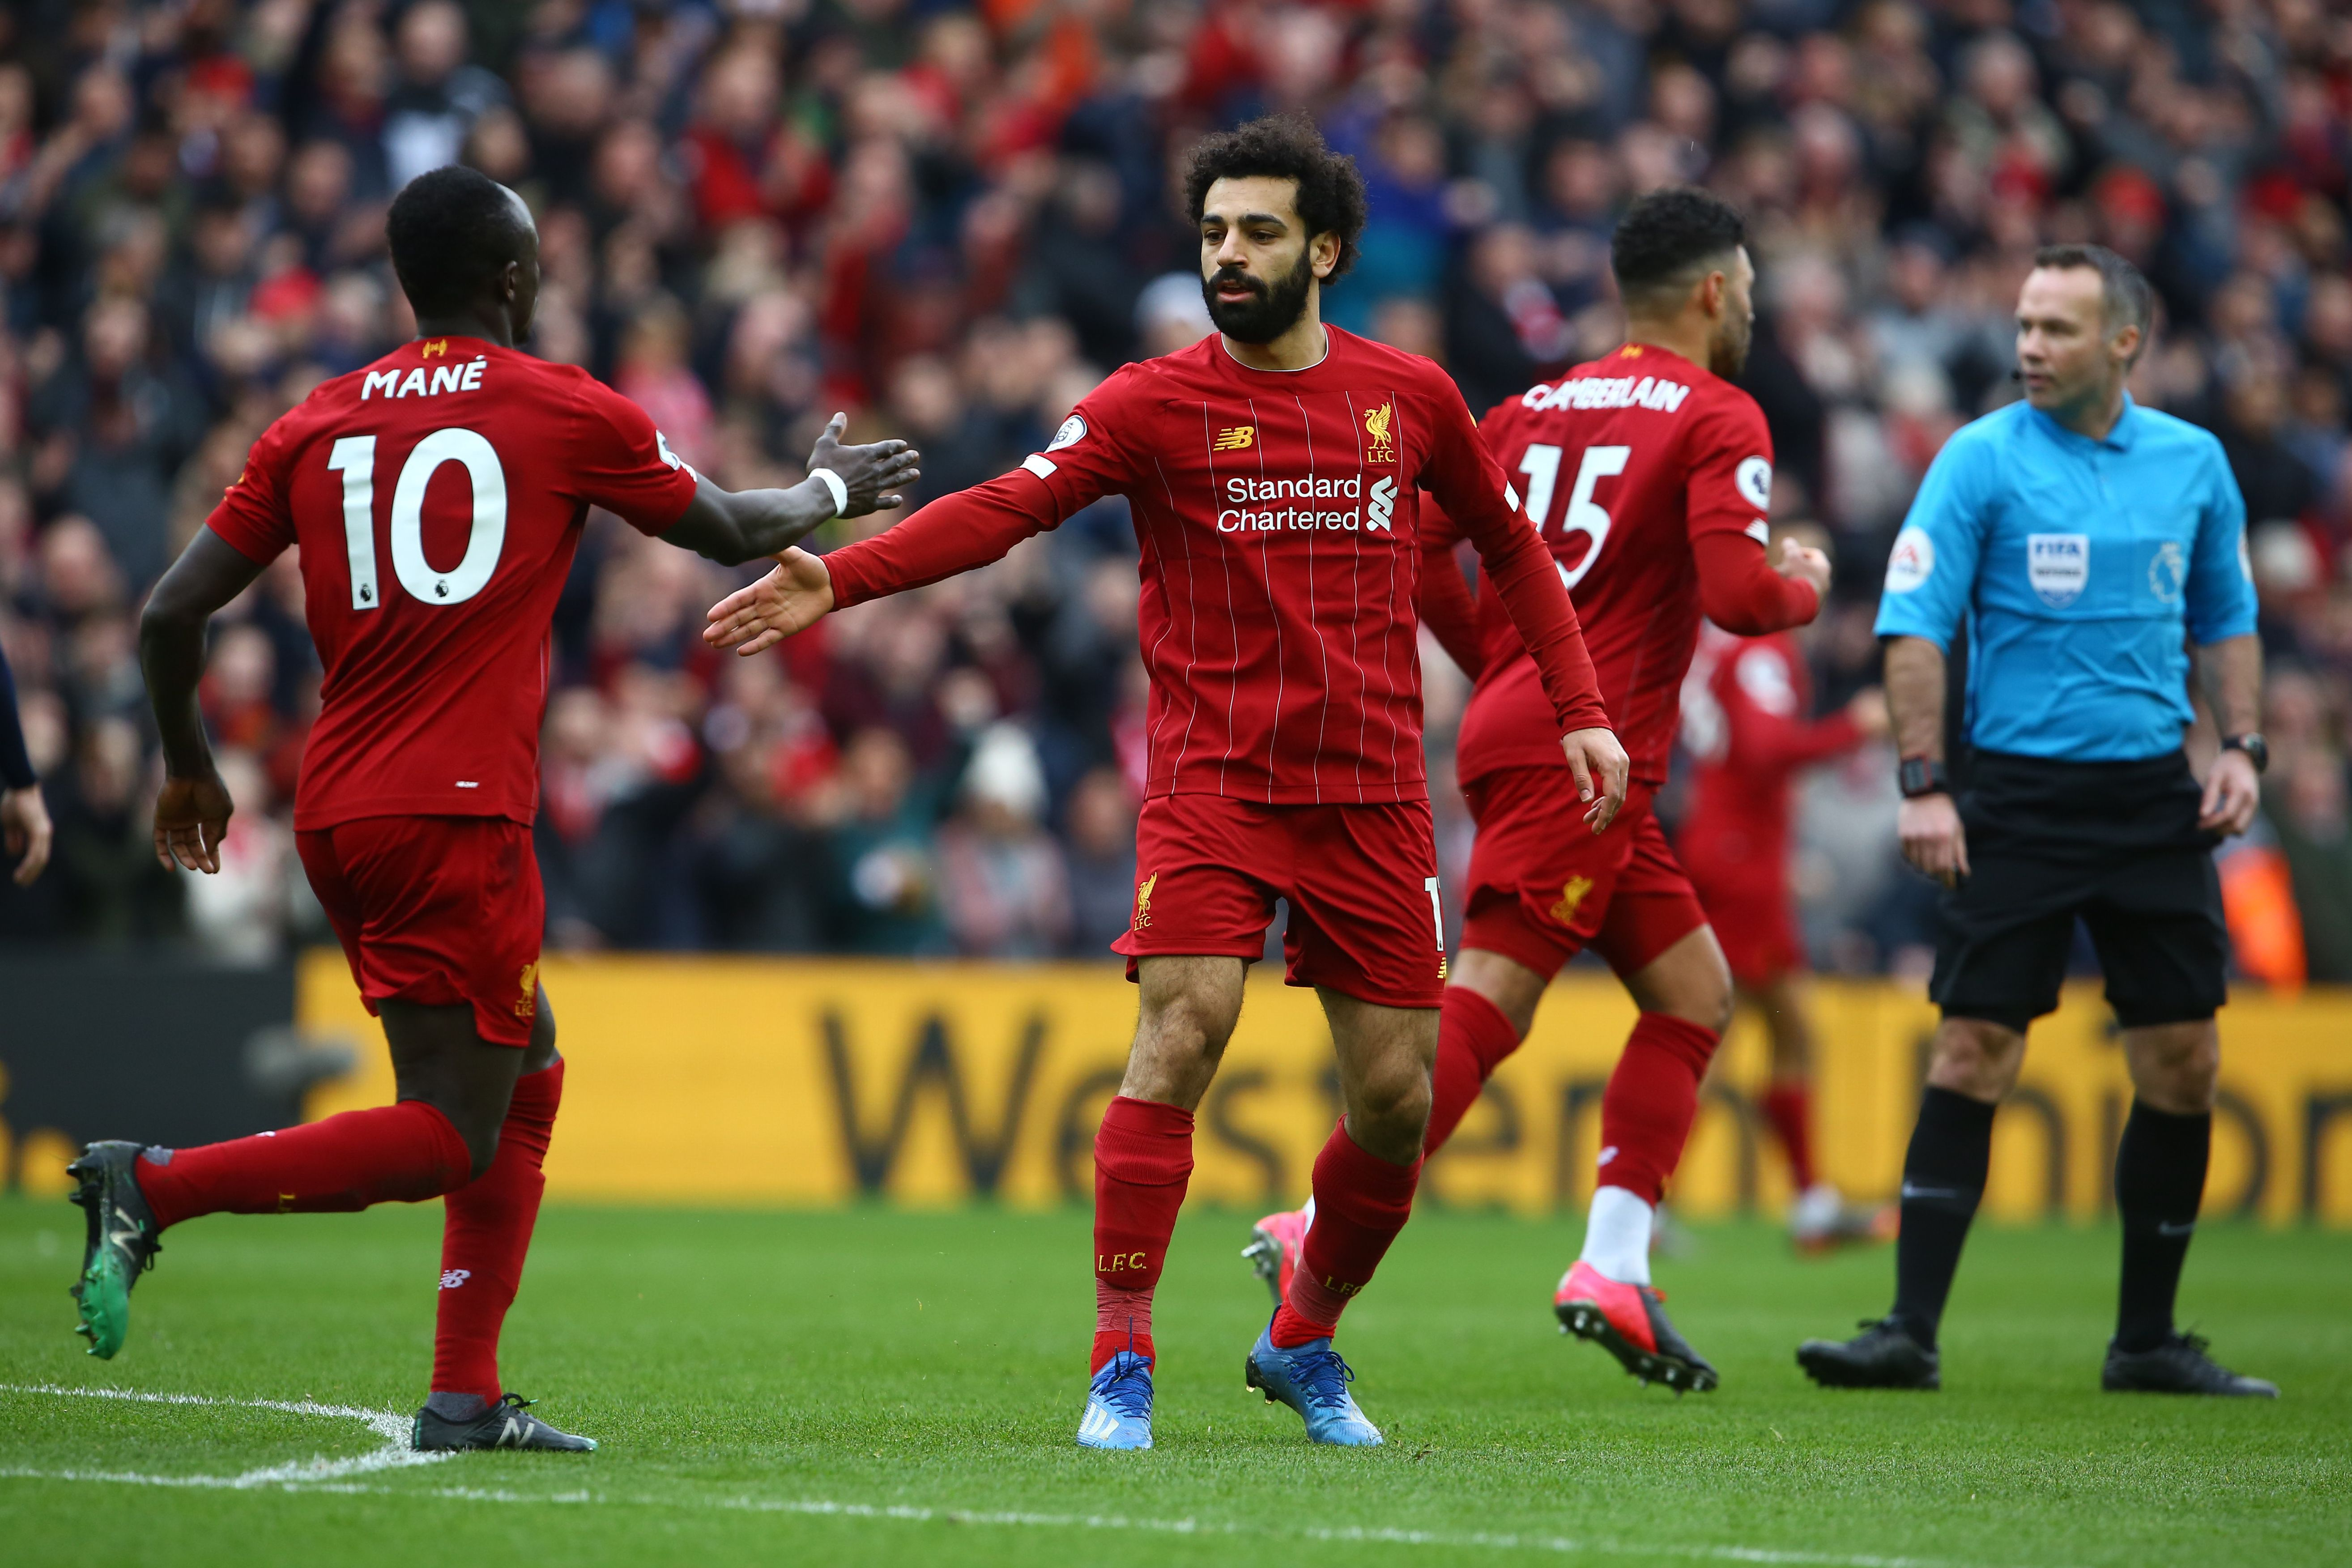 Liverpool Vs Everton Free Live Stream 6 21 20 How To Watch Premier League Soccer 2020 Time Channel Pennlive Com